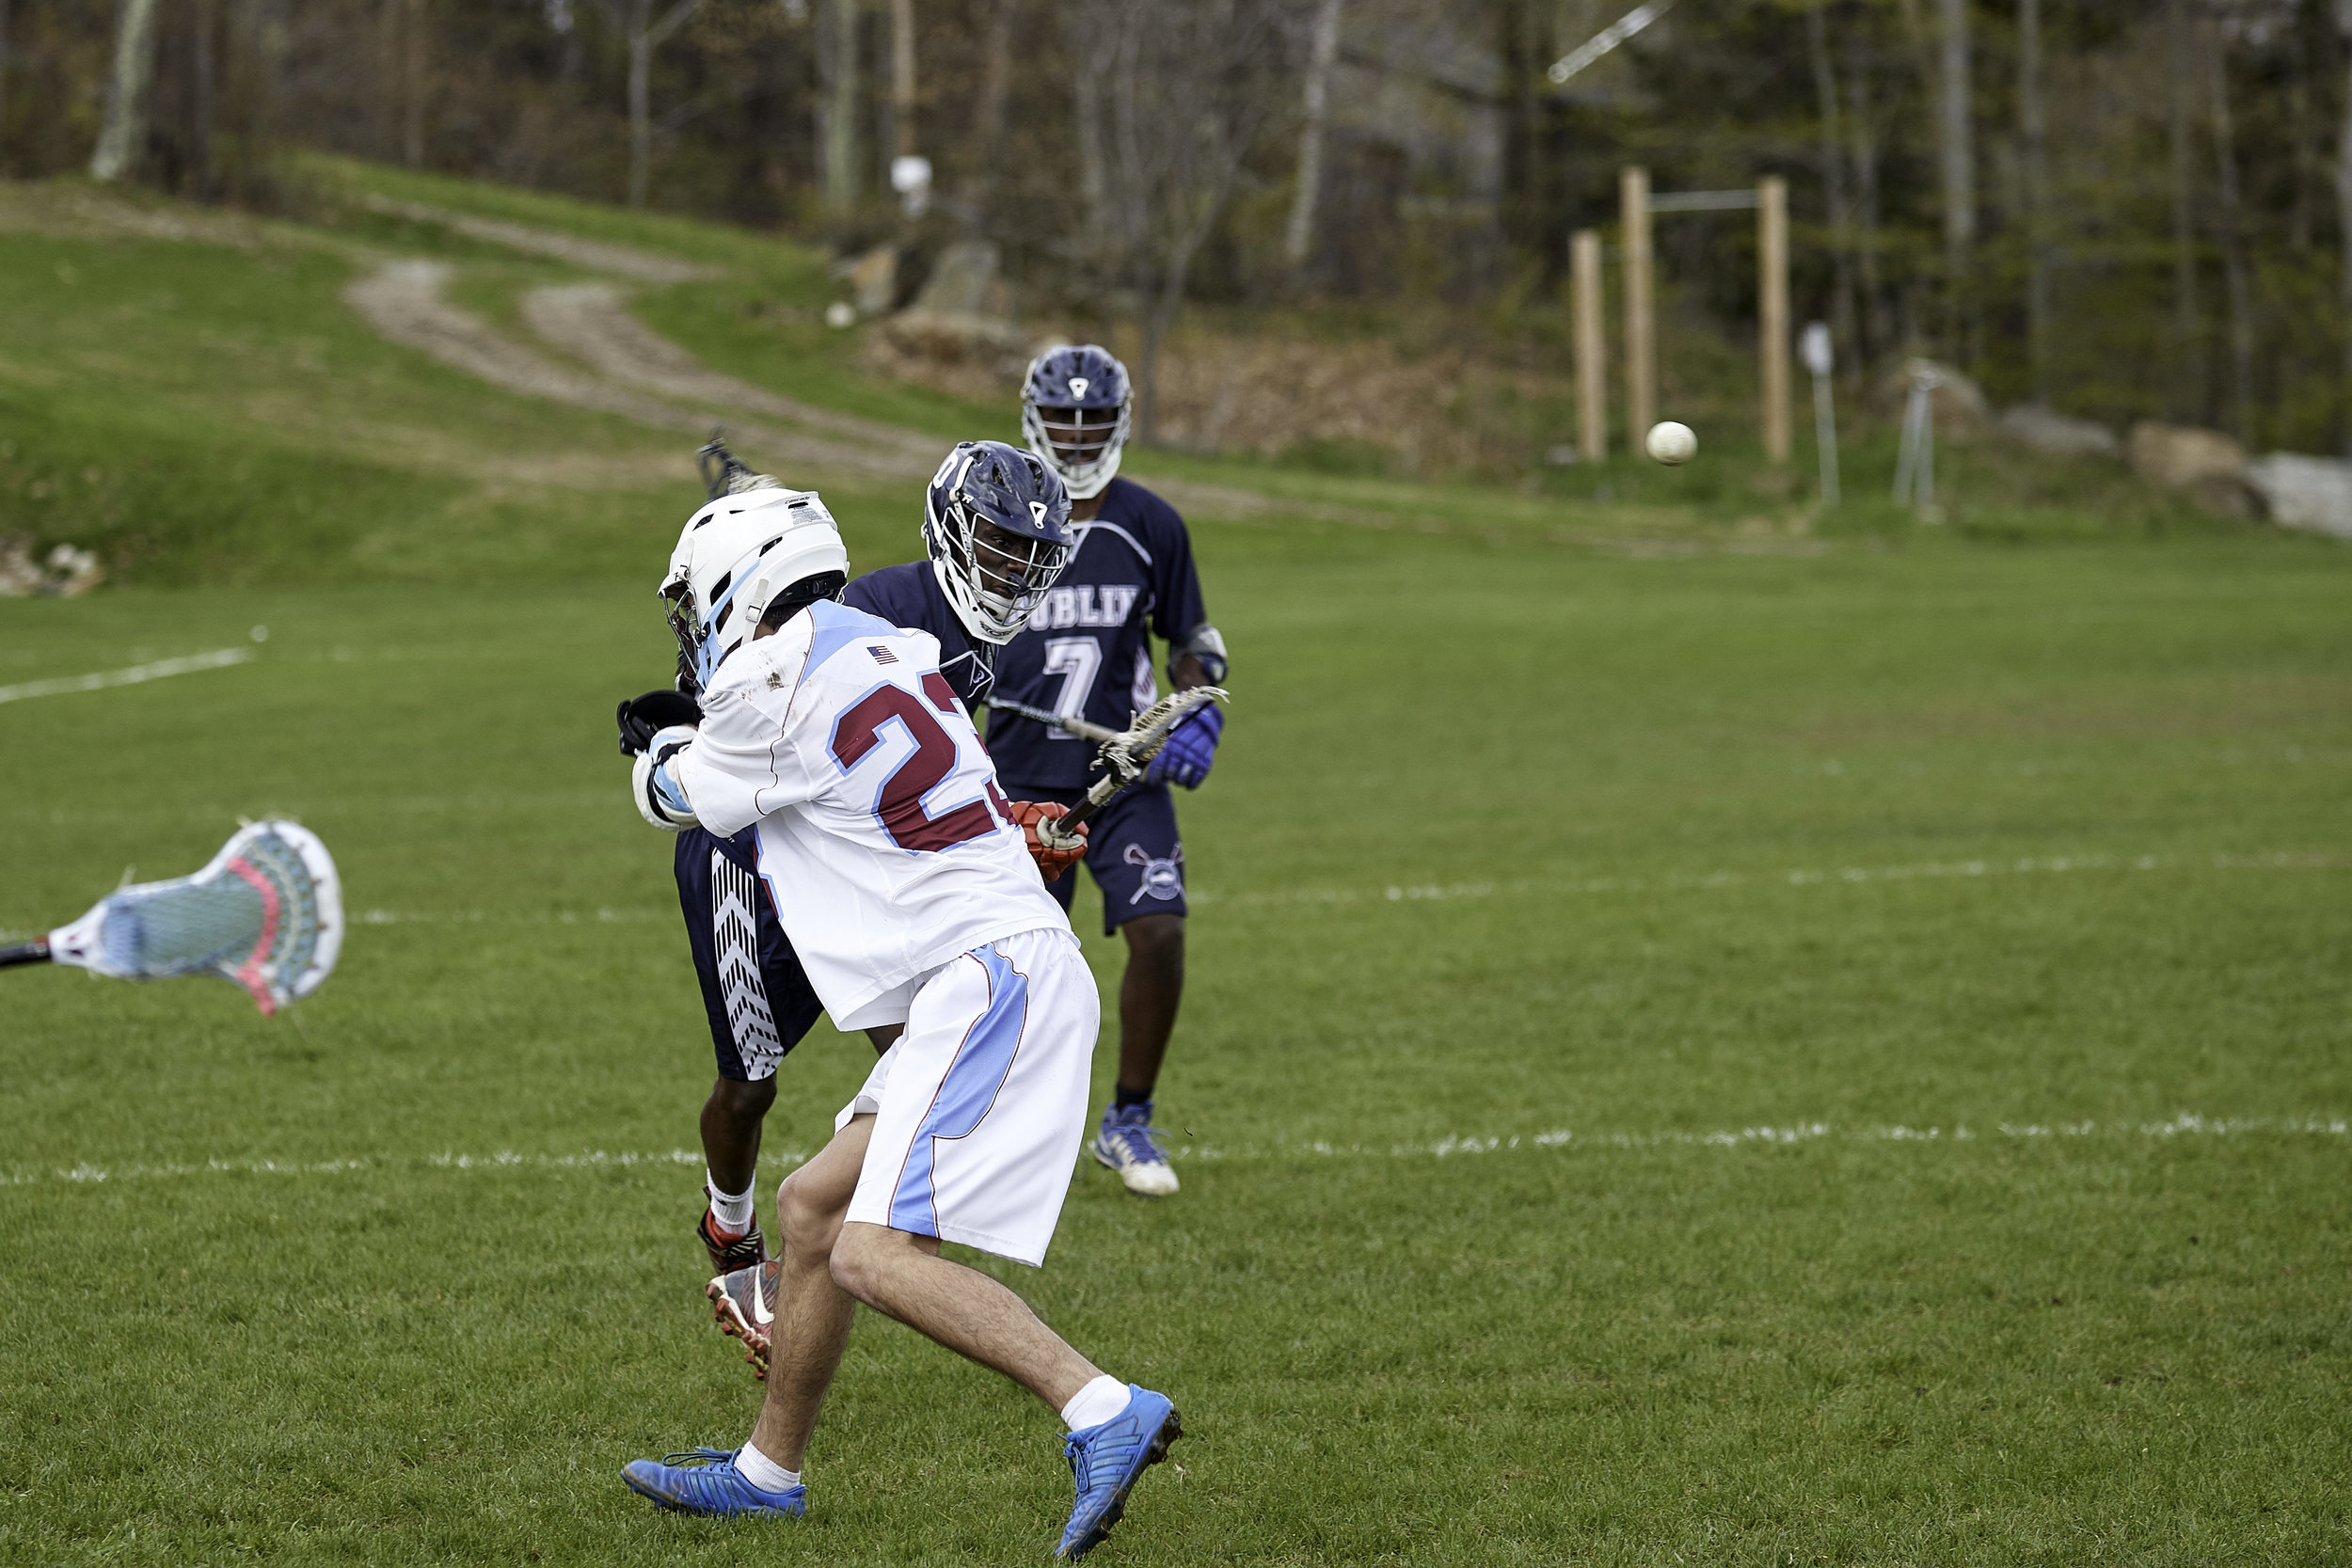 Boys Lax vs Northfield Mount Hermon JV - May 15 2019 - 0052.jpg